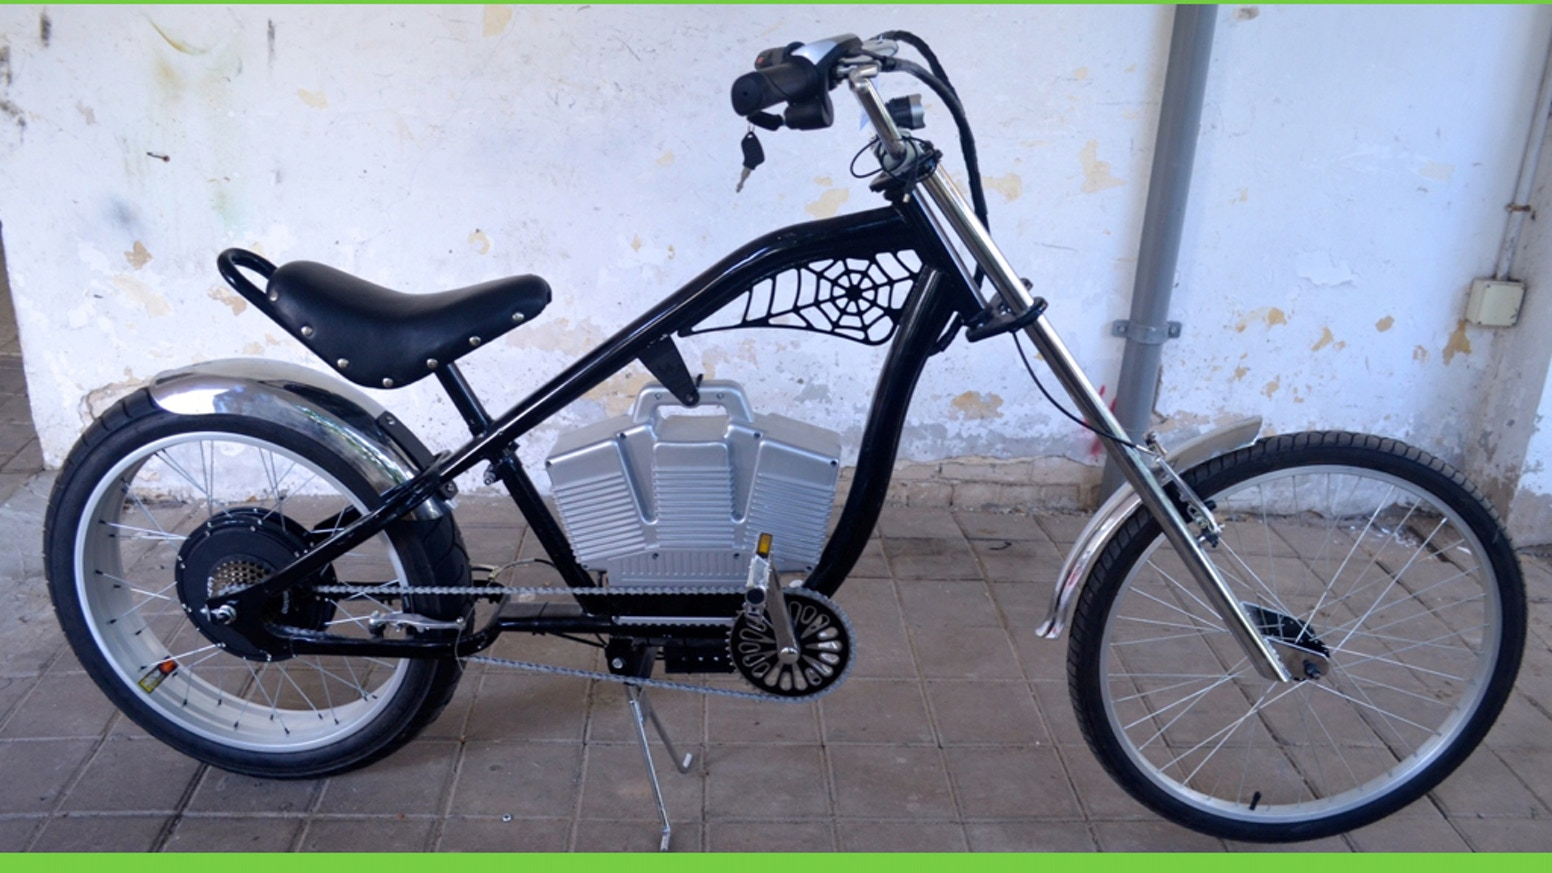 Learn How To Build Your Own Electric Bicycle The Hardcover